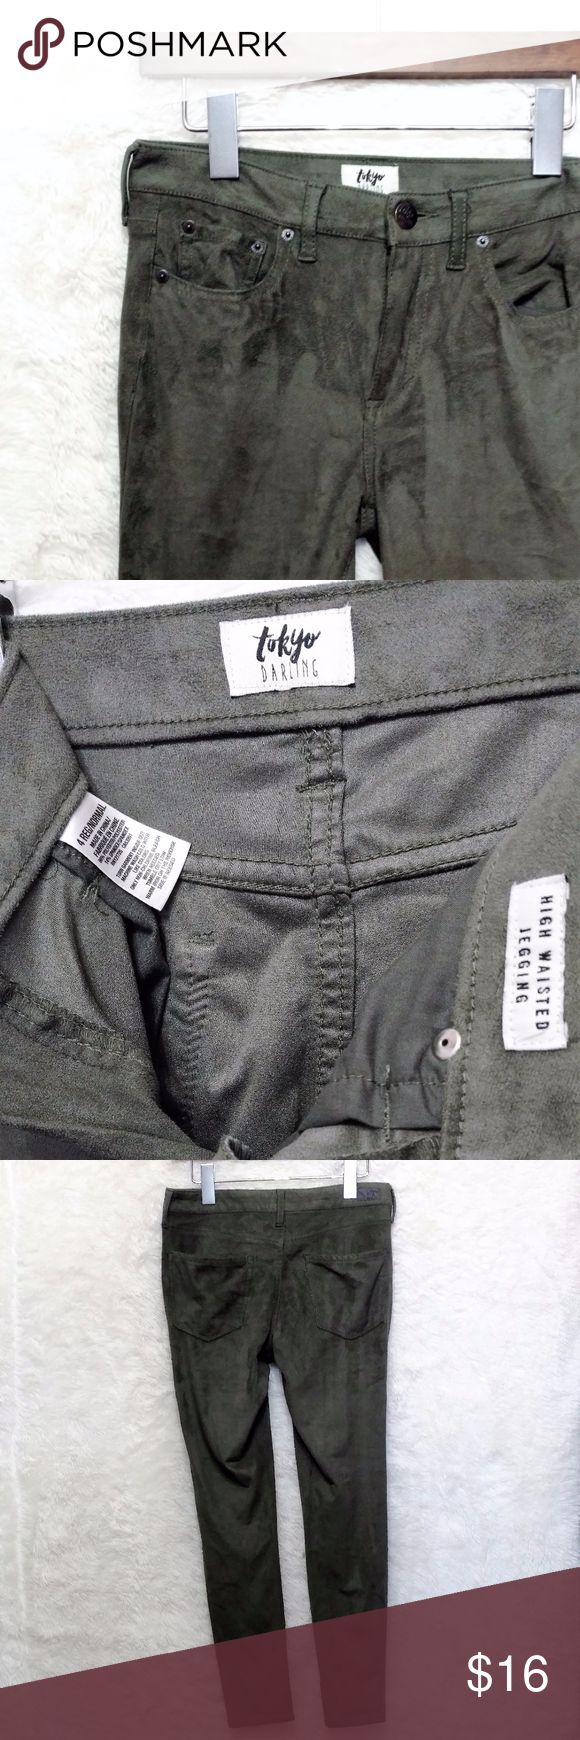 """Tokyo Darling Faux Suede Green High Waist Jegging EUC Soft faux suede material jeggings in a pretty green tone. Super comfy. FAST same day or next business day shipping!  Measurements: Waist 28"""" Inseam 26.5"""" Rise 9"""" Aeropostale Pants Leggings"""